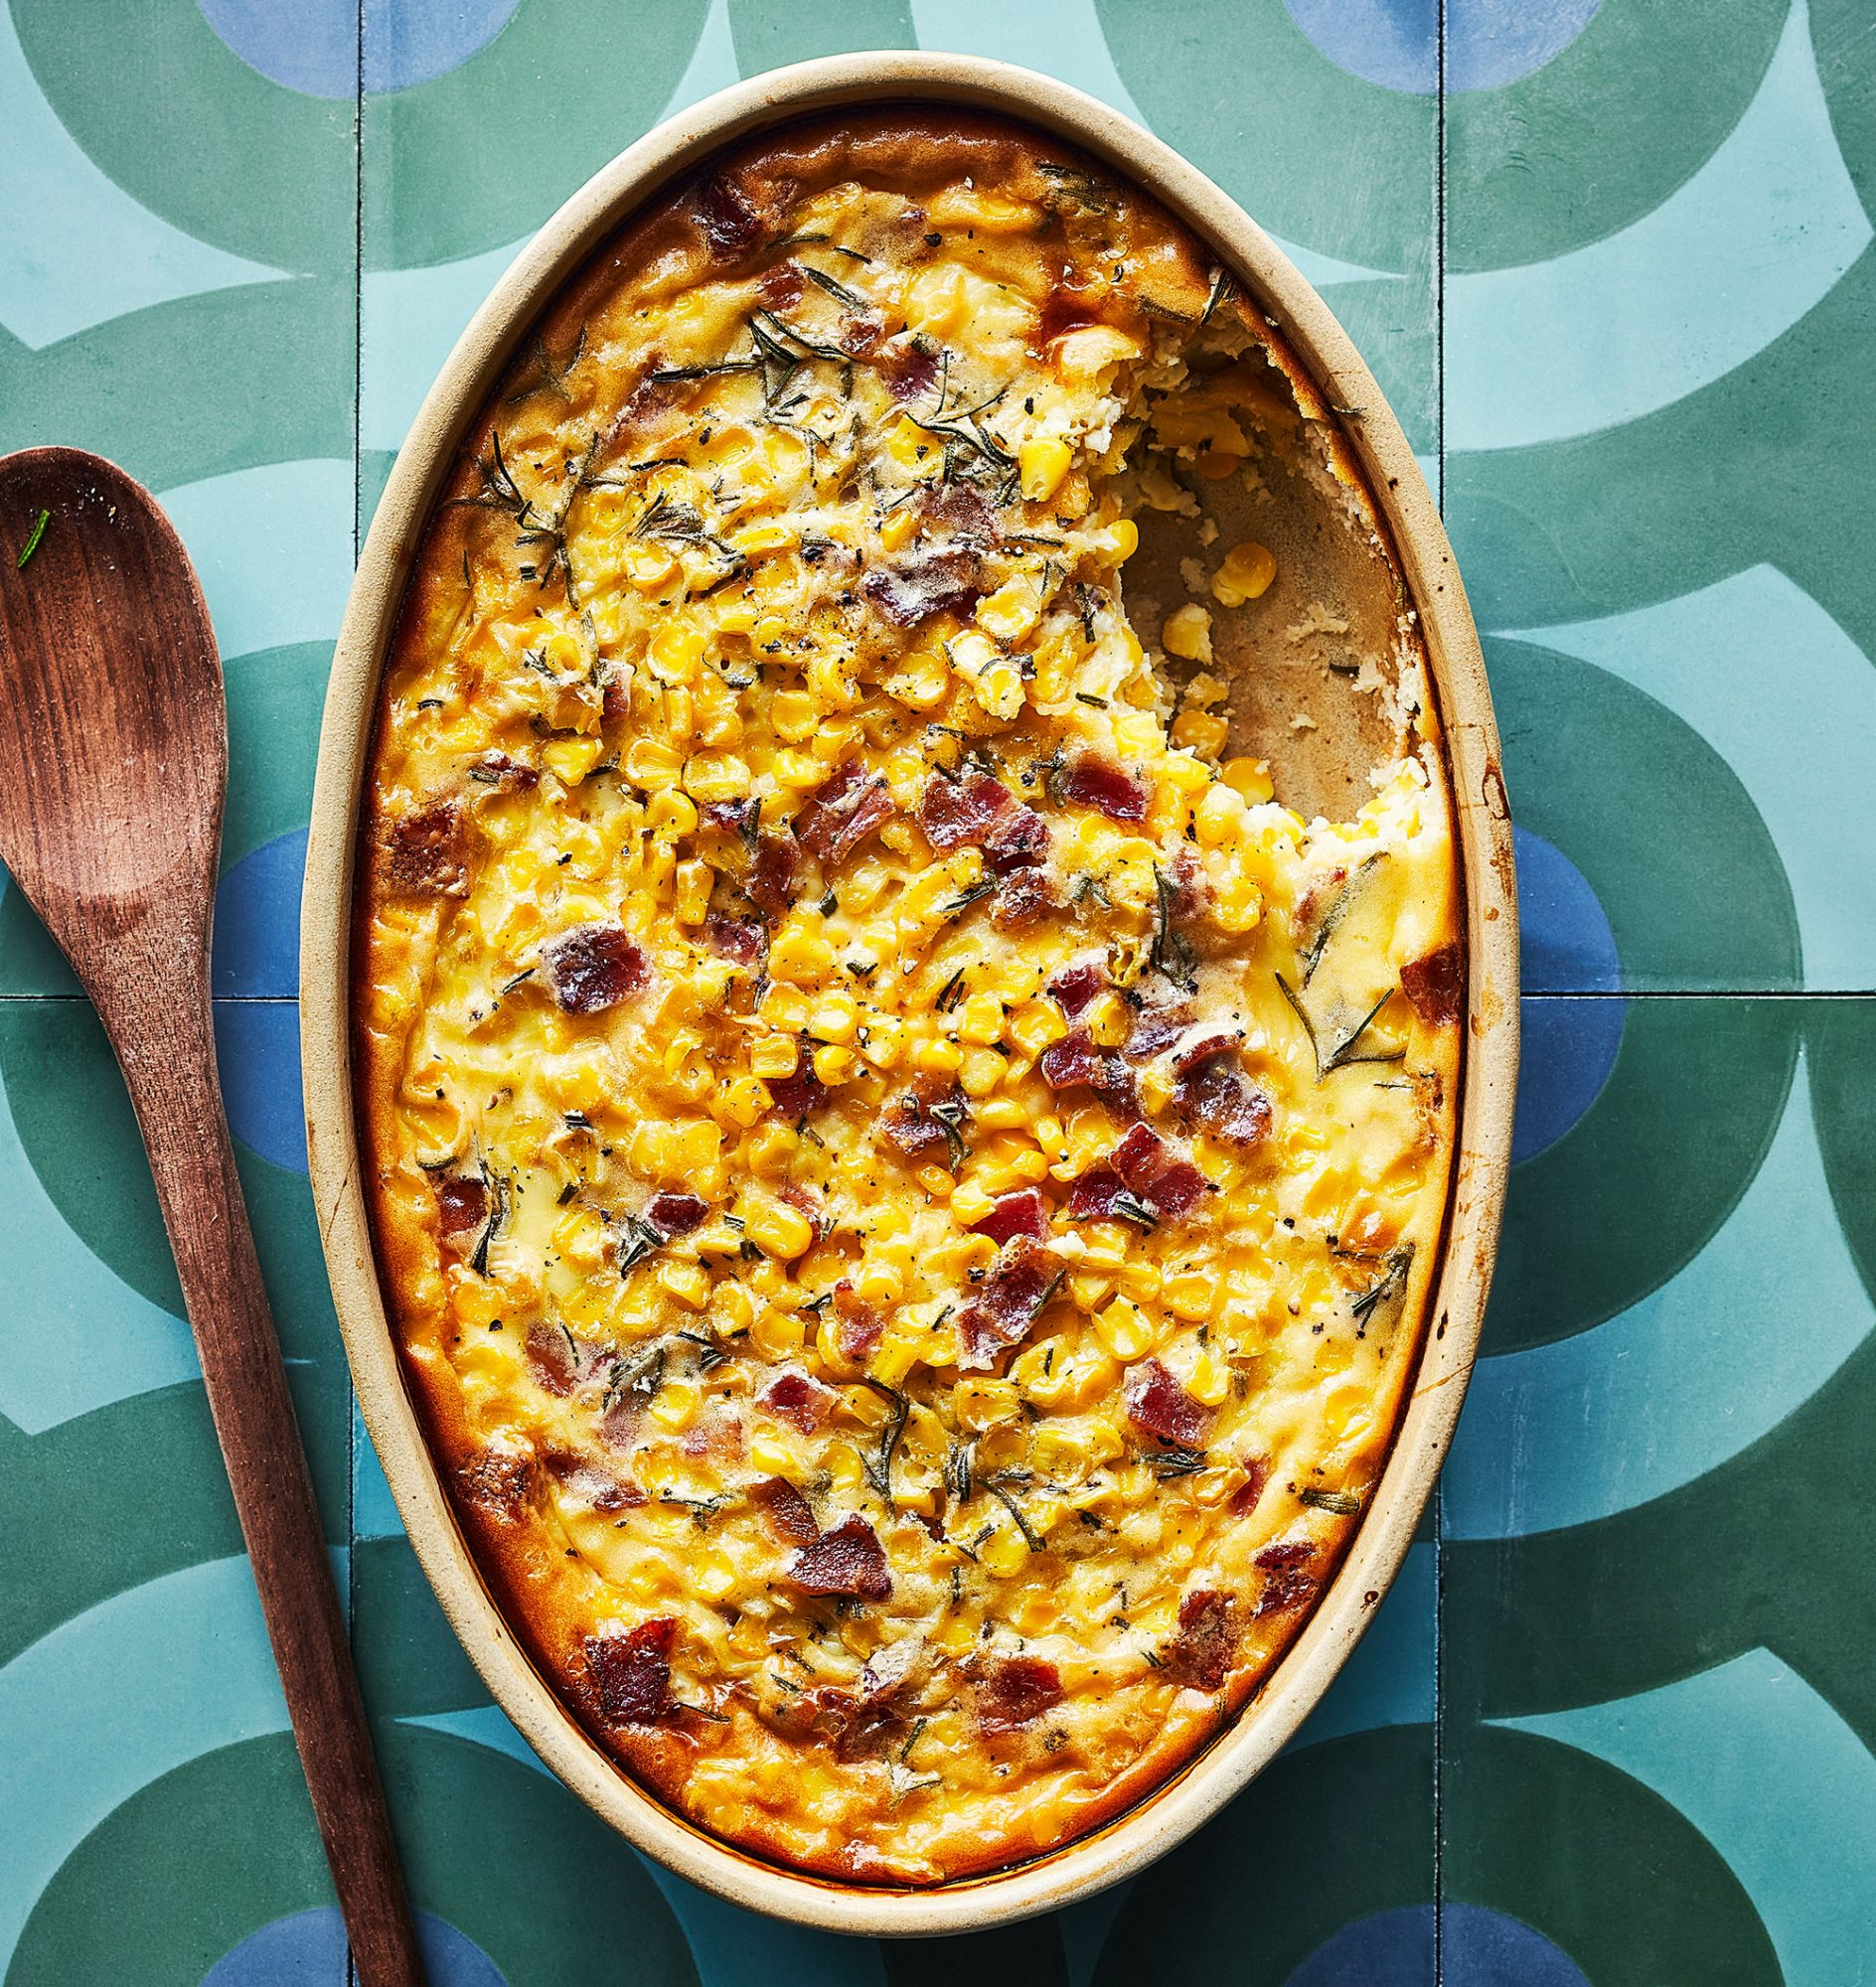 casserole dish with corn pudding on a green and blue tiled surface